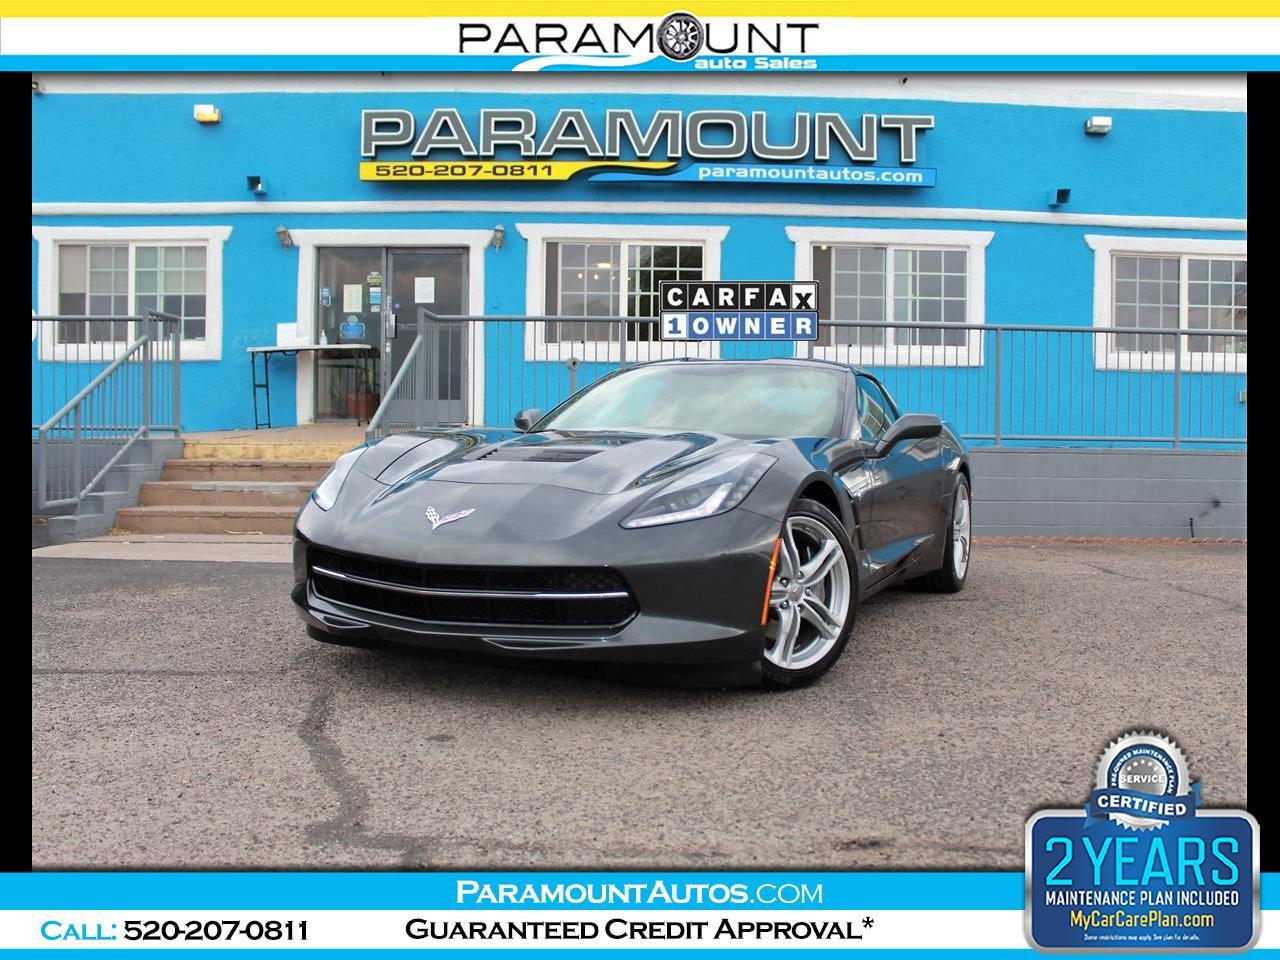 Chevrolet Corvette 1LT Coupe Automatic 2017